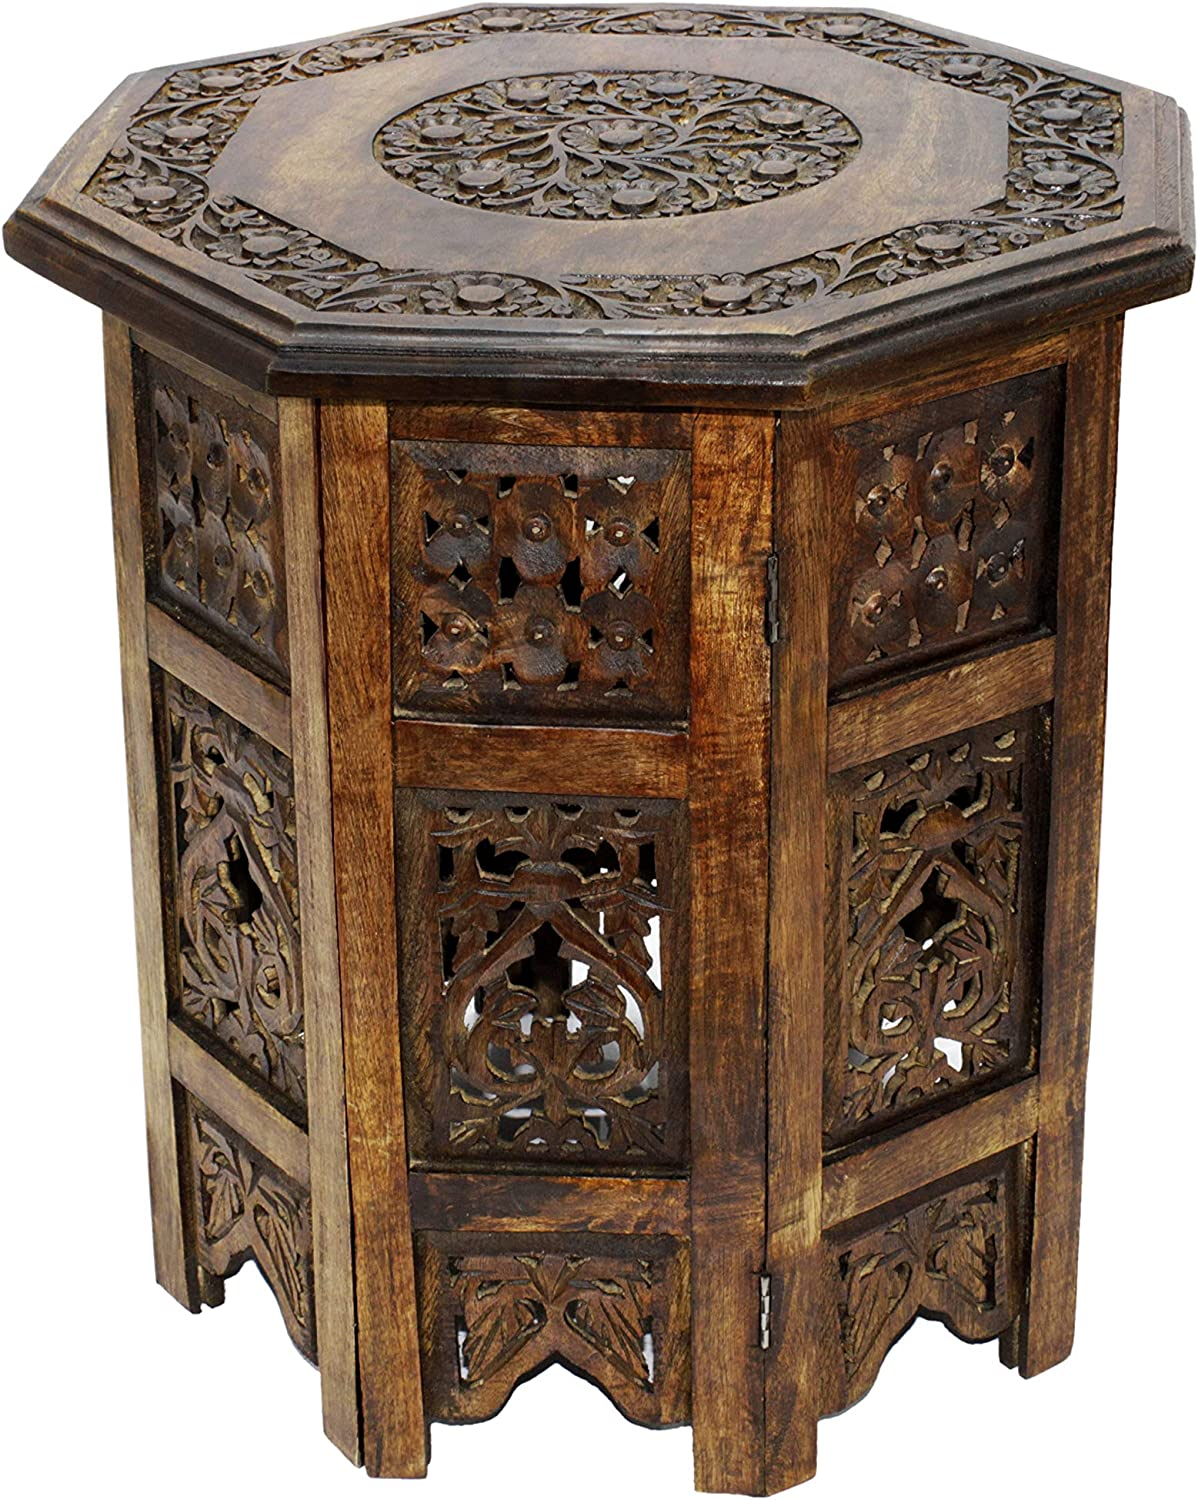 Cotton Craft Carved Wood Octagon Coffee Table -Walnut - 18 Inch Round Top x 18 Inch High -Intricate Detail with Hand Carving